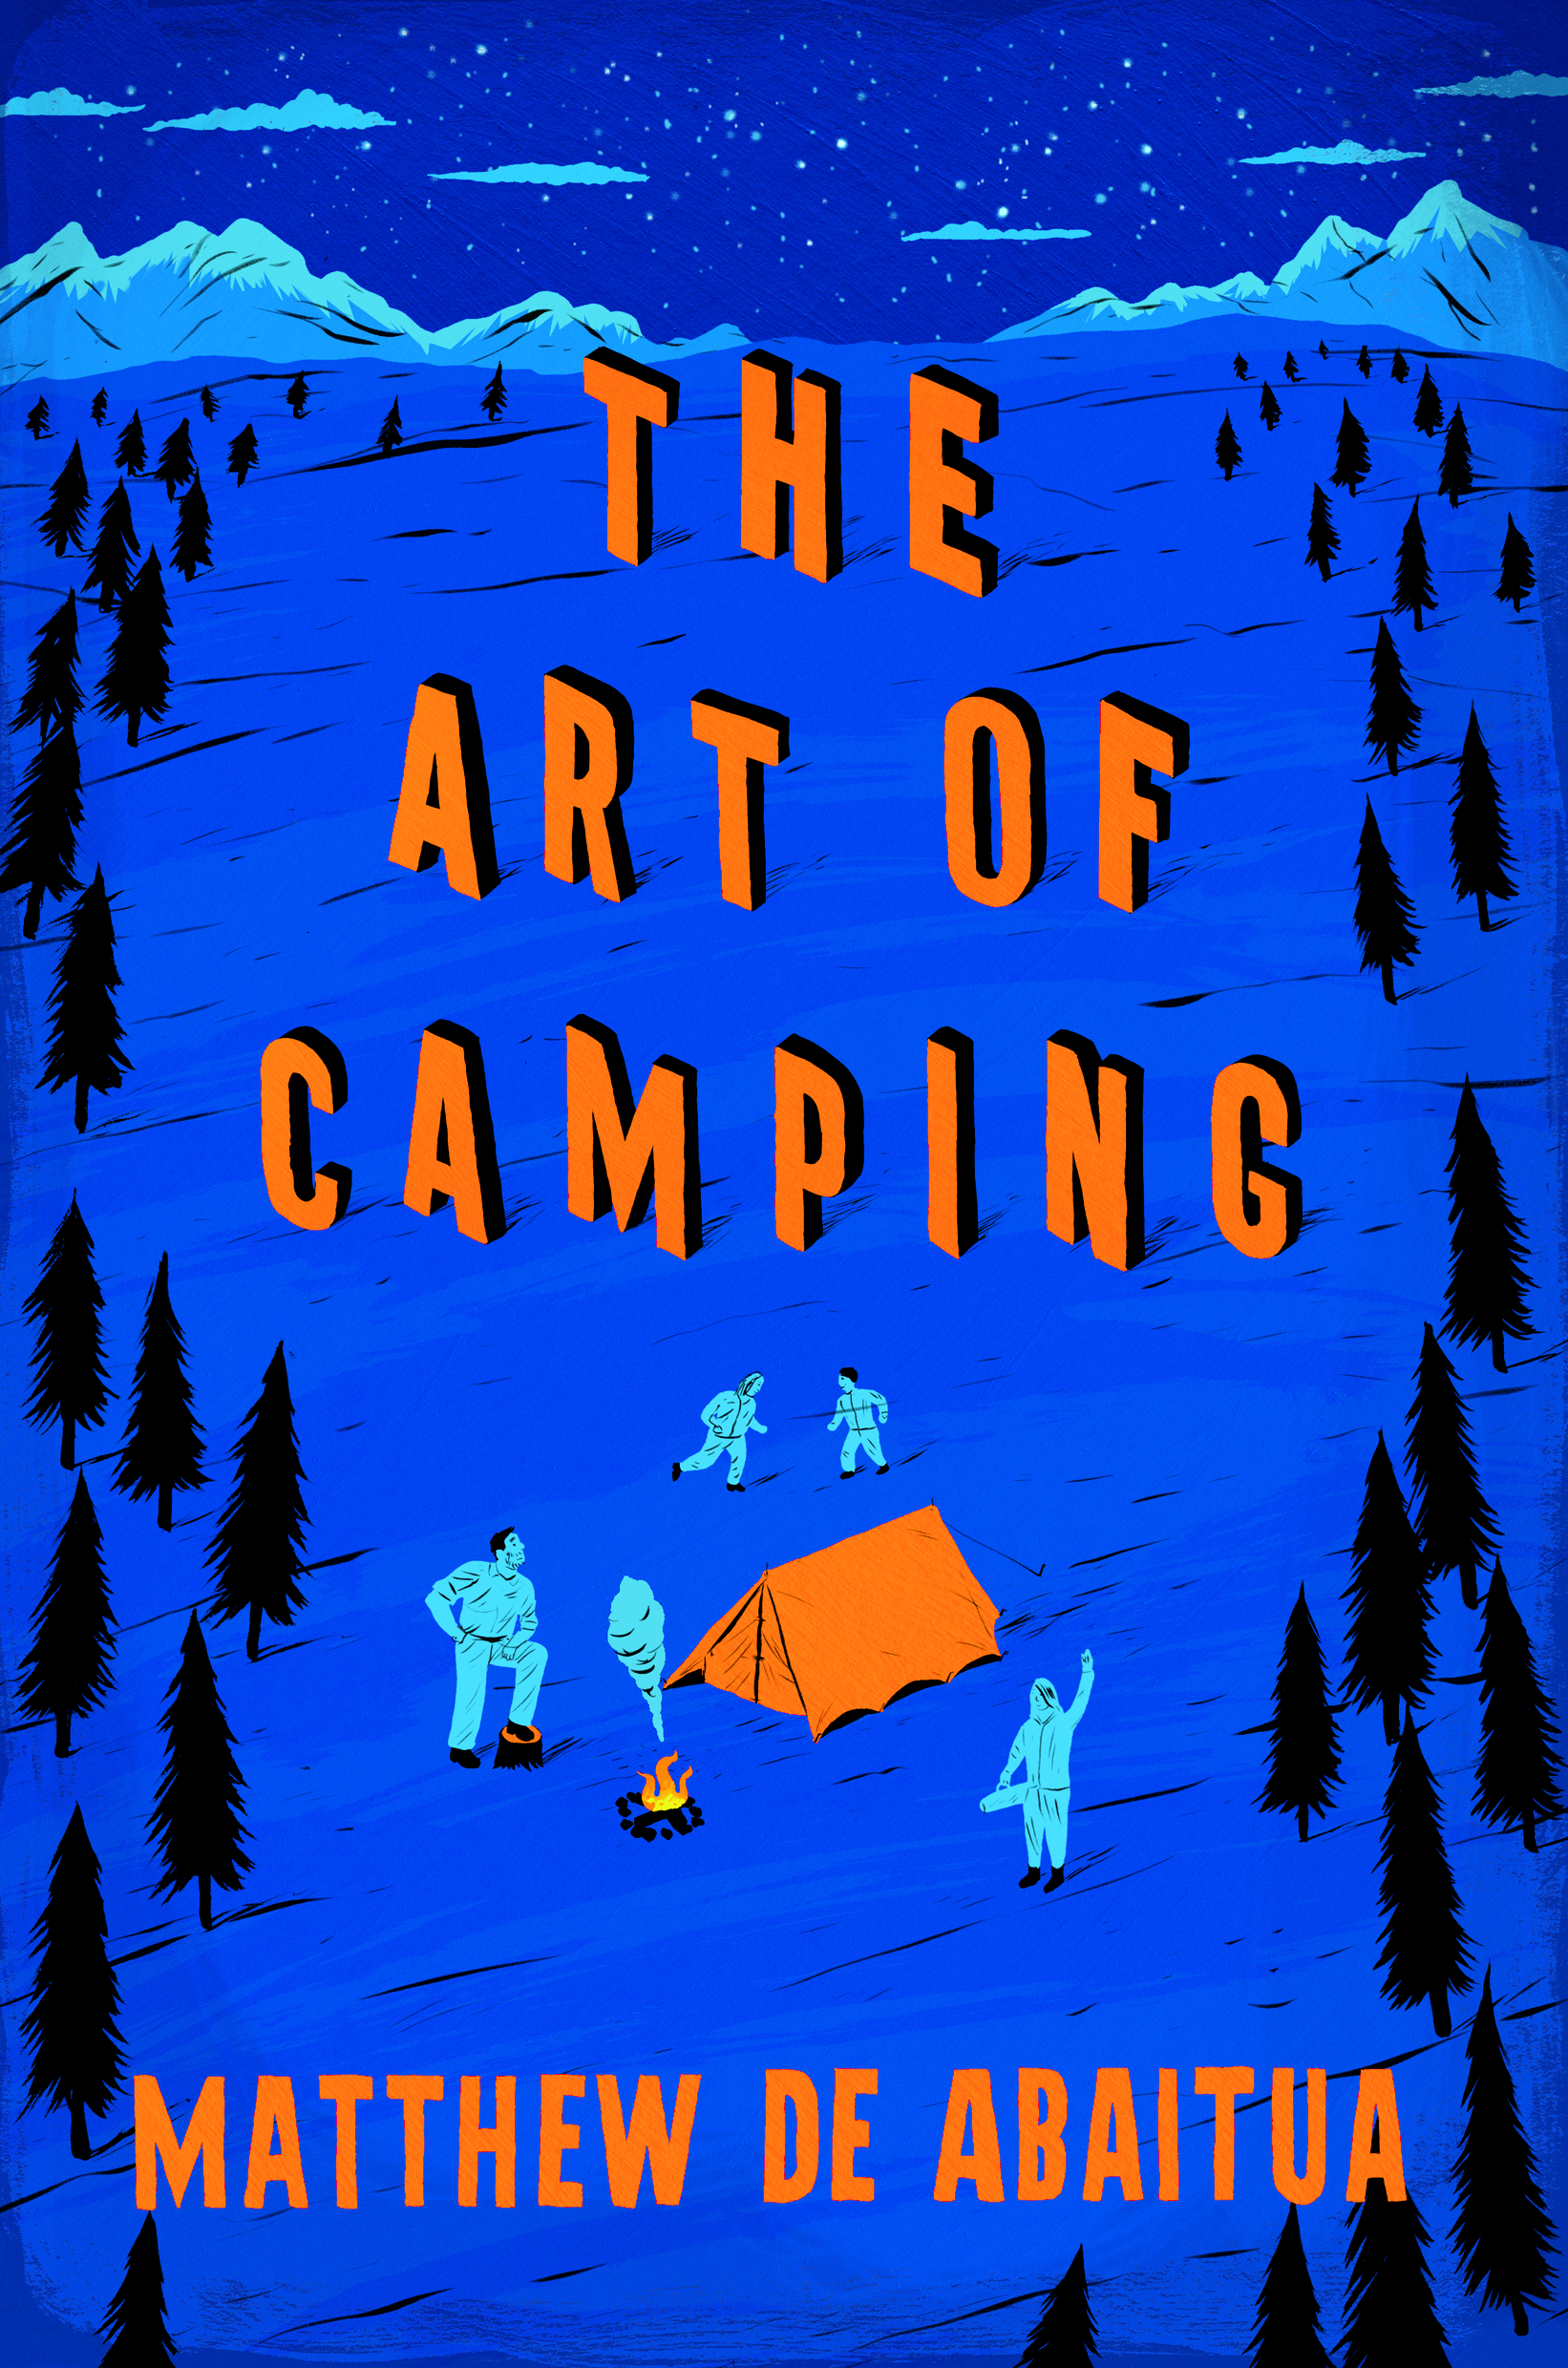 The cover of the paperback edition of The Art of Camping by Matthew De Abaitua